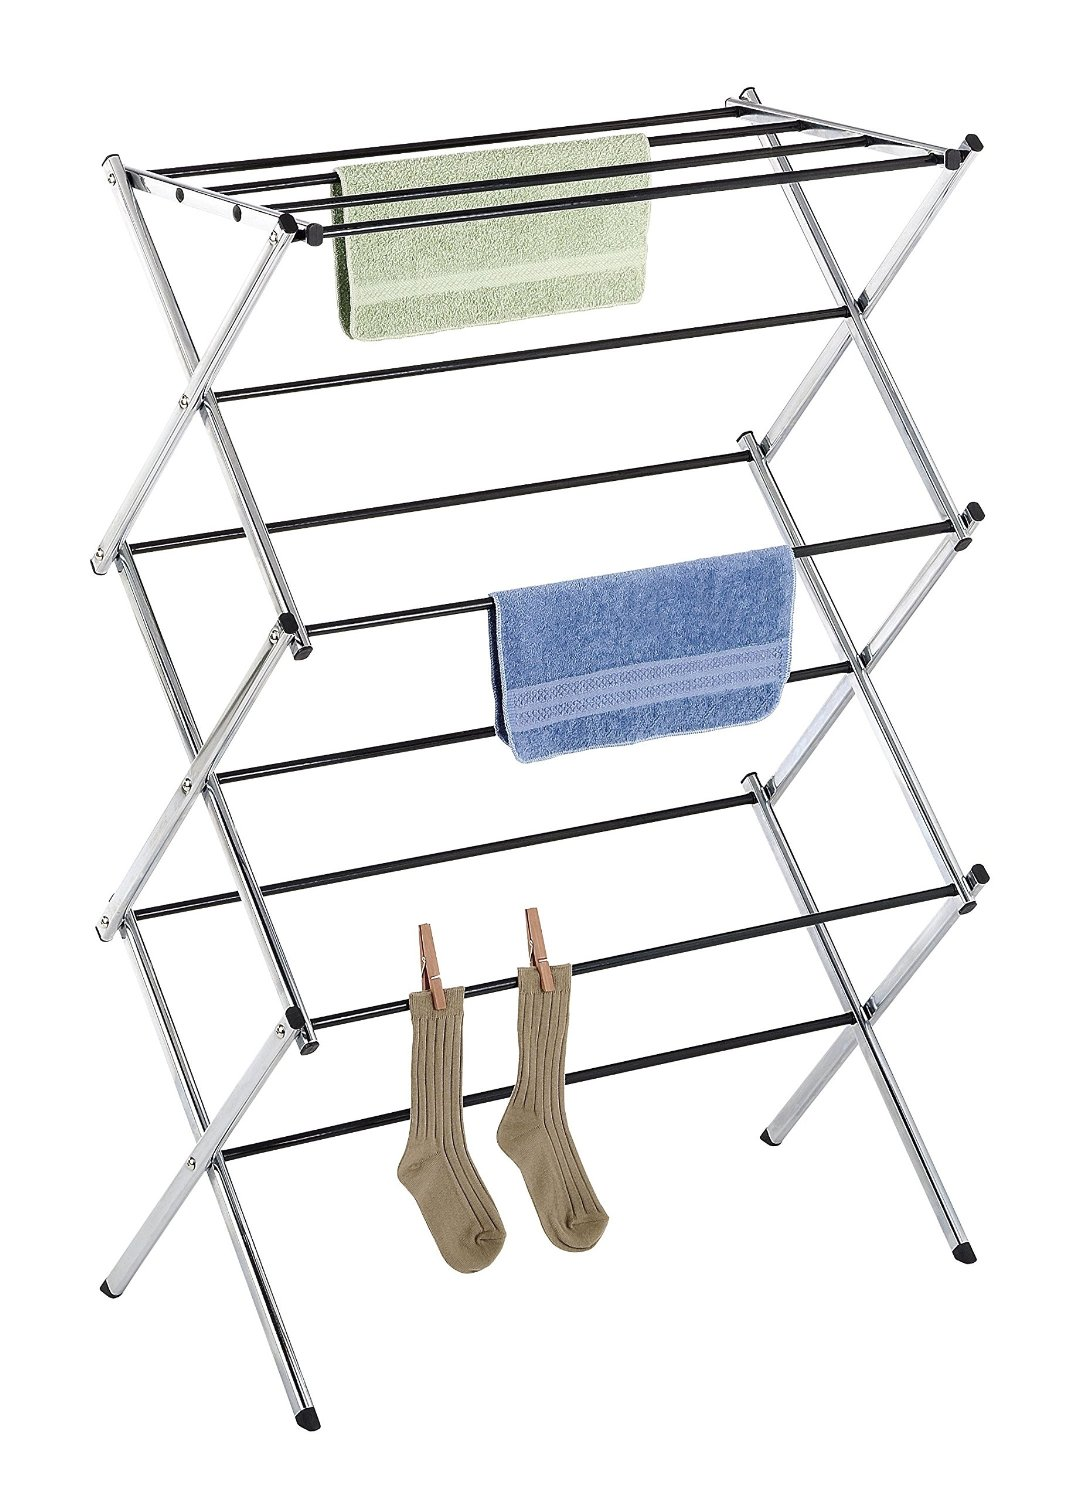 Folding Clothes Drying Rack, Chrome, Rust-Proof Guarantee, Premium Quality CHROME, Ship from USA,Brand Whitmor by